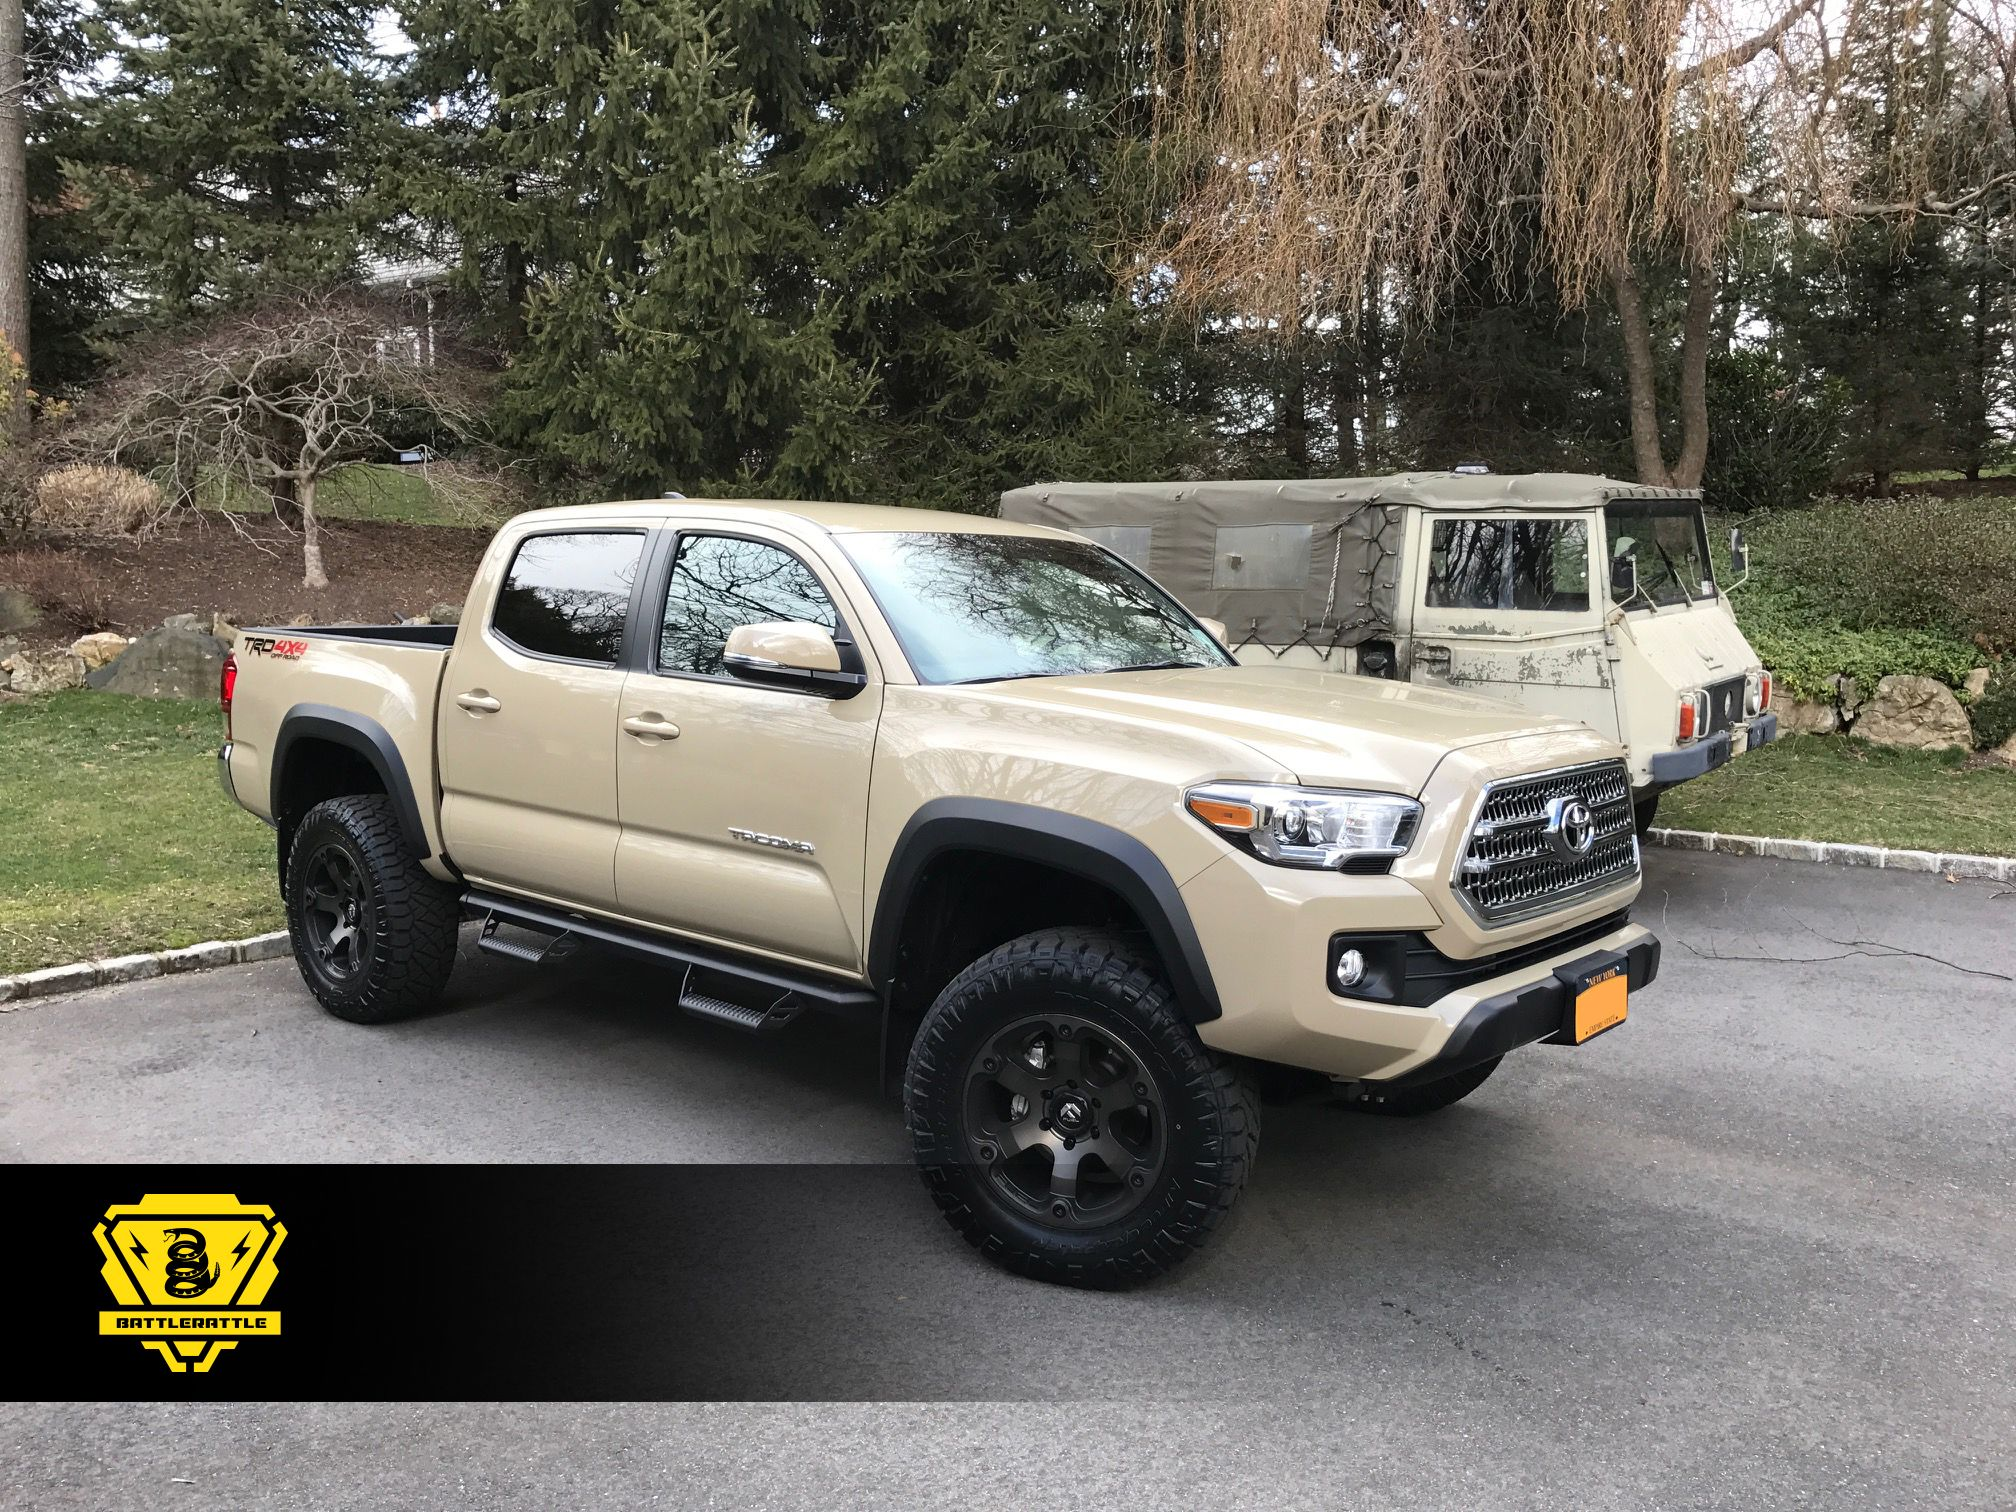 My New Ride 2017 Off Road Lt285 65r18 Nitto Ridge Grappler Wrapped 20122014 Toyota Tacoma Trailer Wiring Harness Around 18 Fuel Beast Rims More To Come